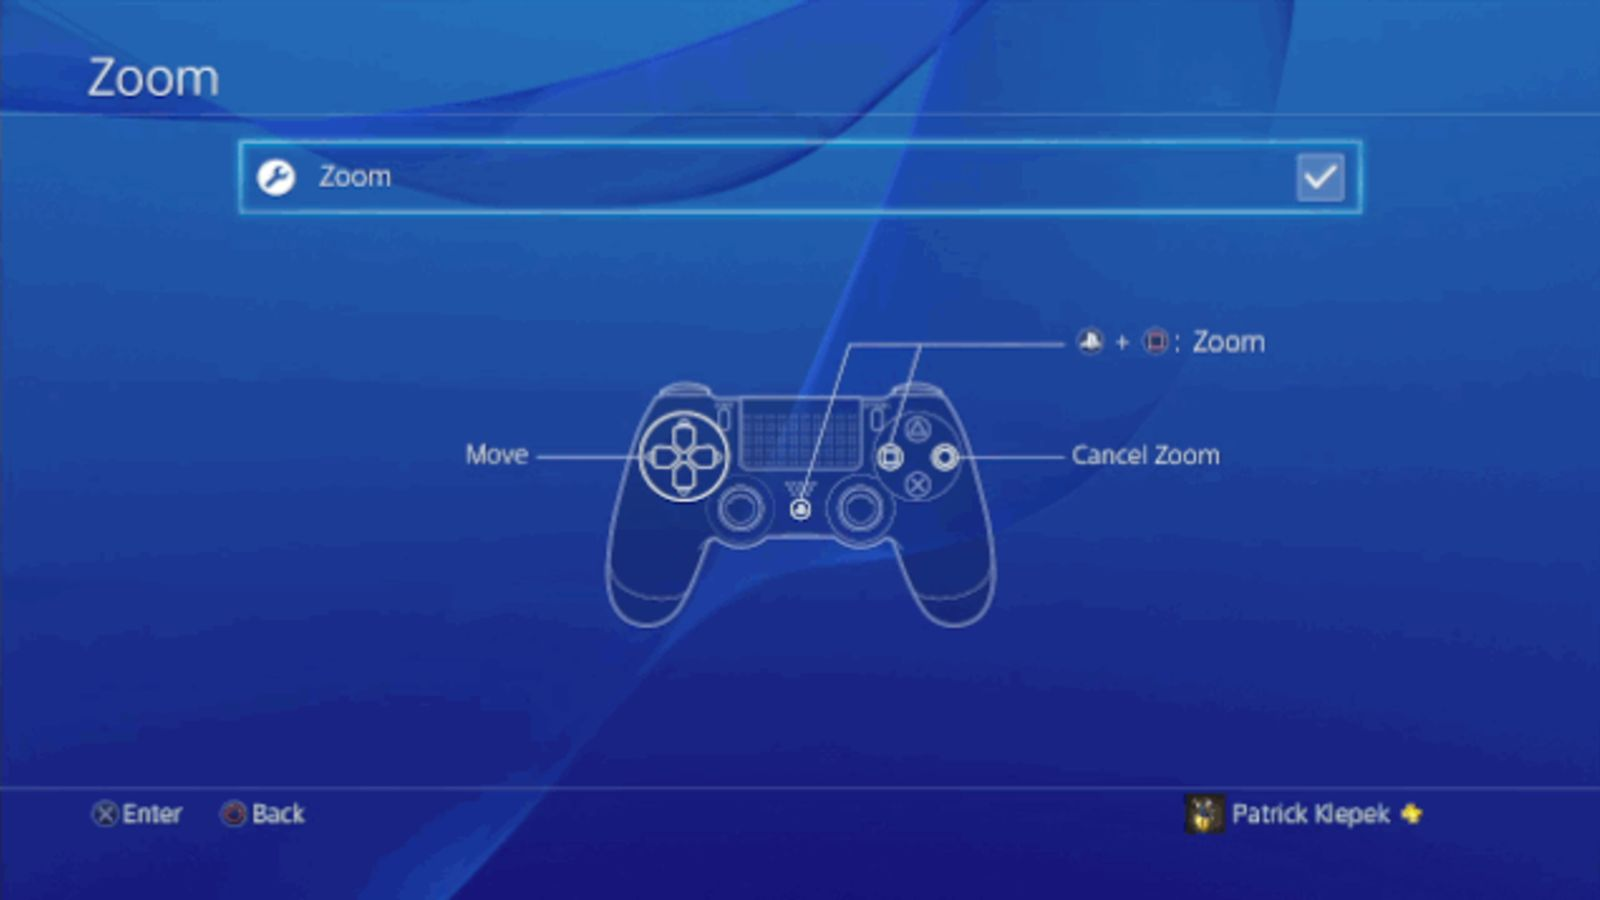 15 PS4 Hacks & Tricks You Probably Didn't Know - Gameranx